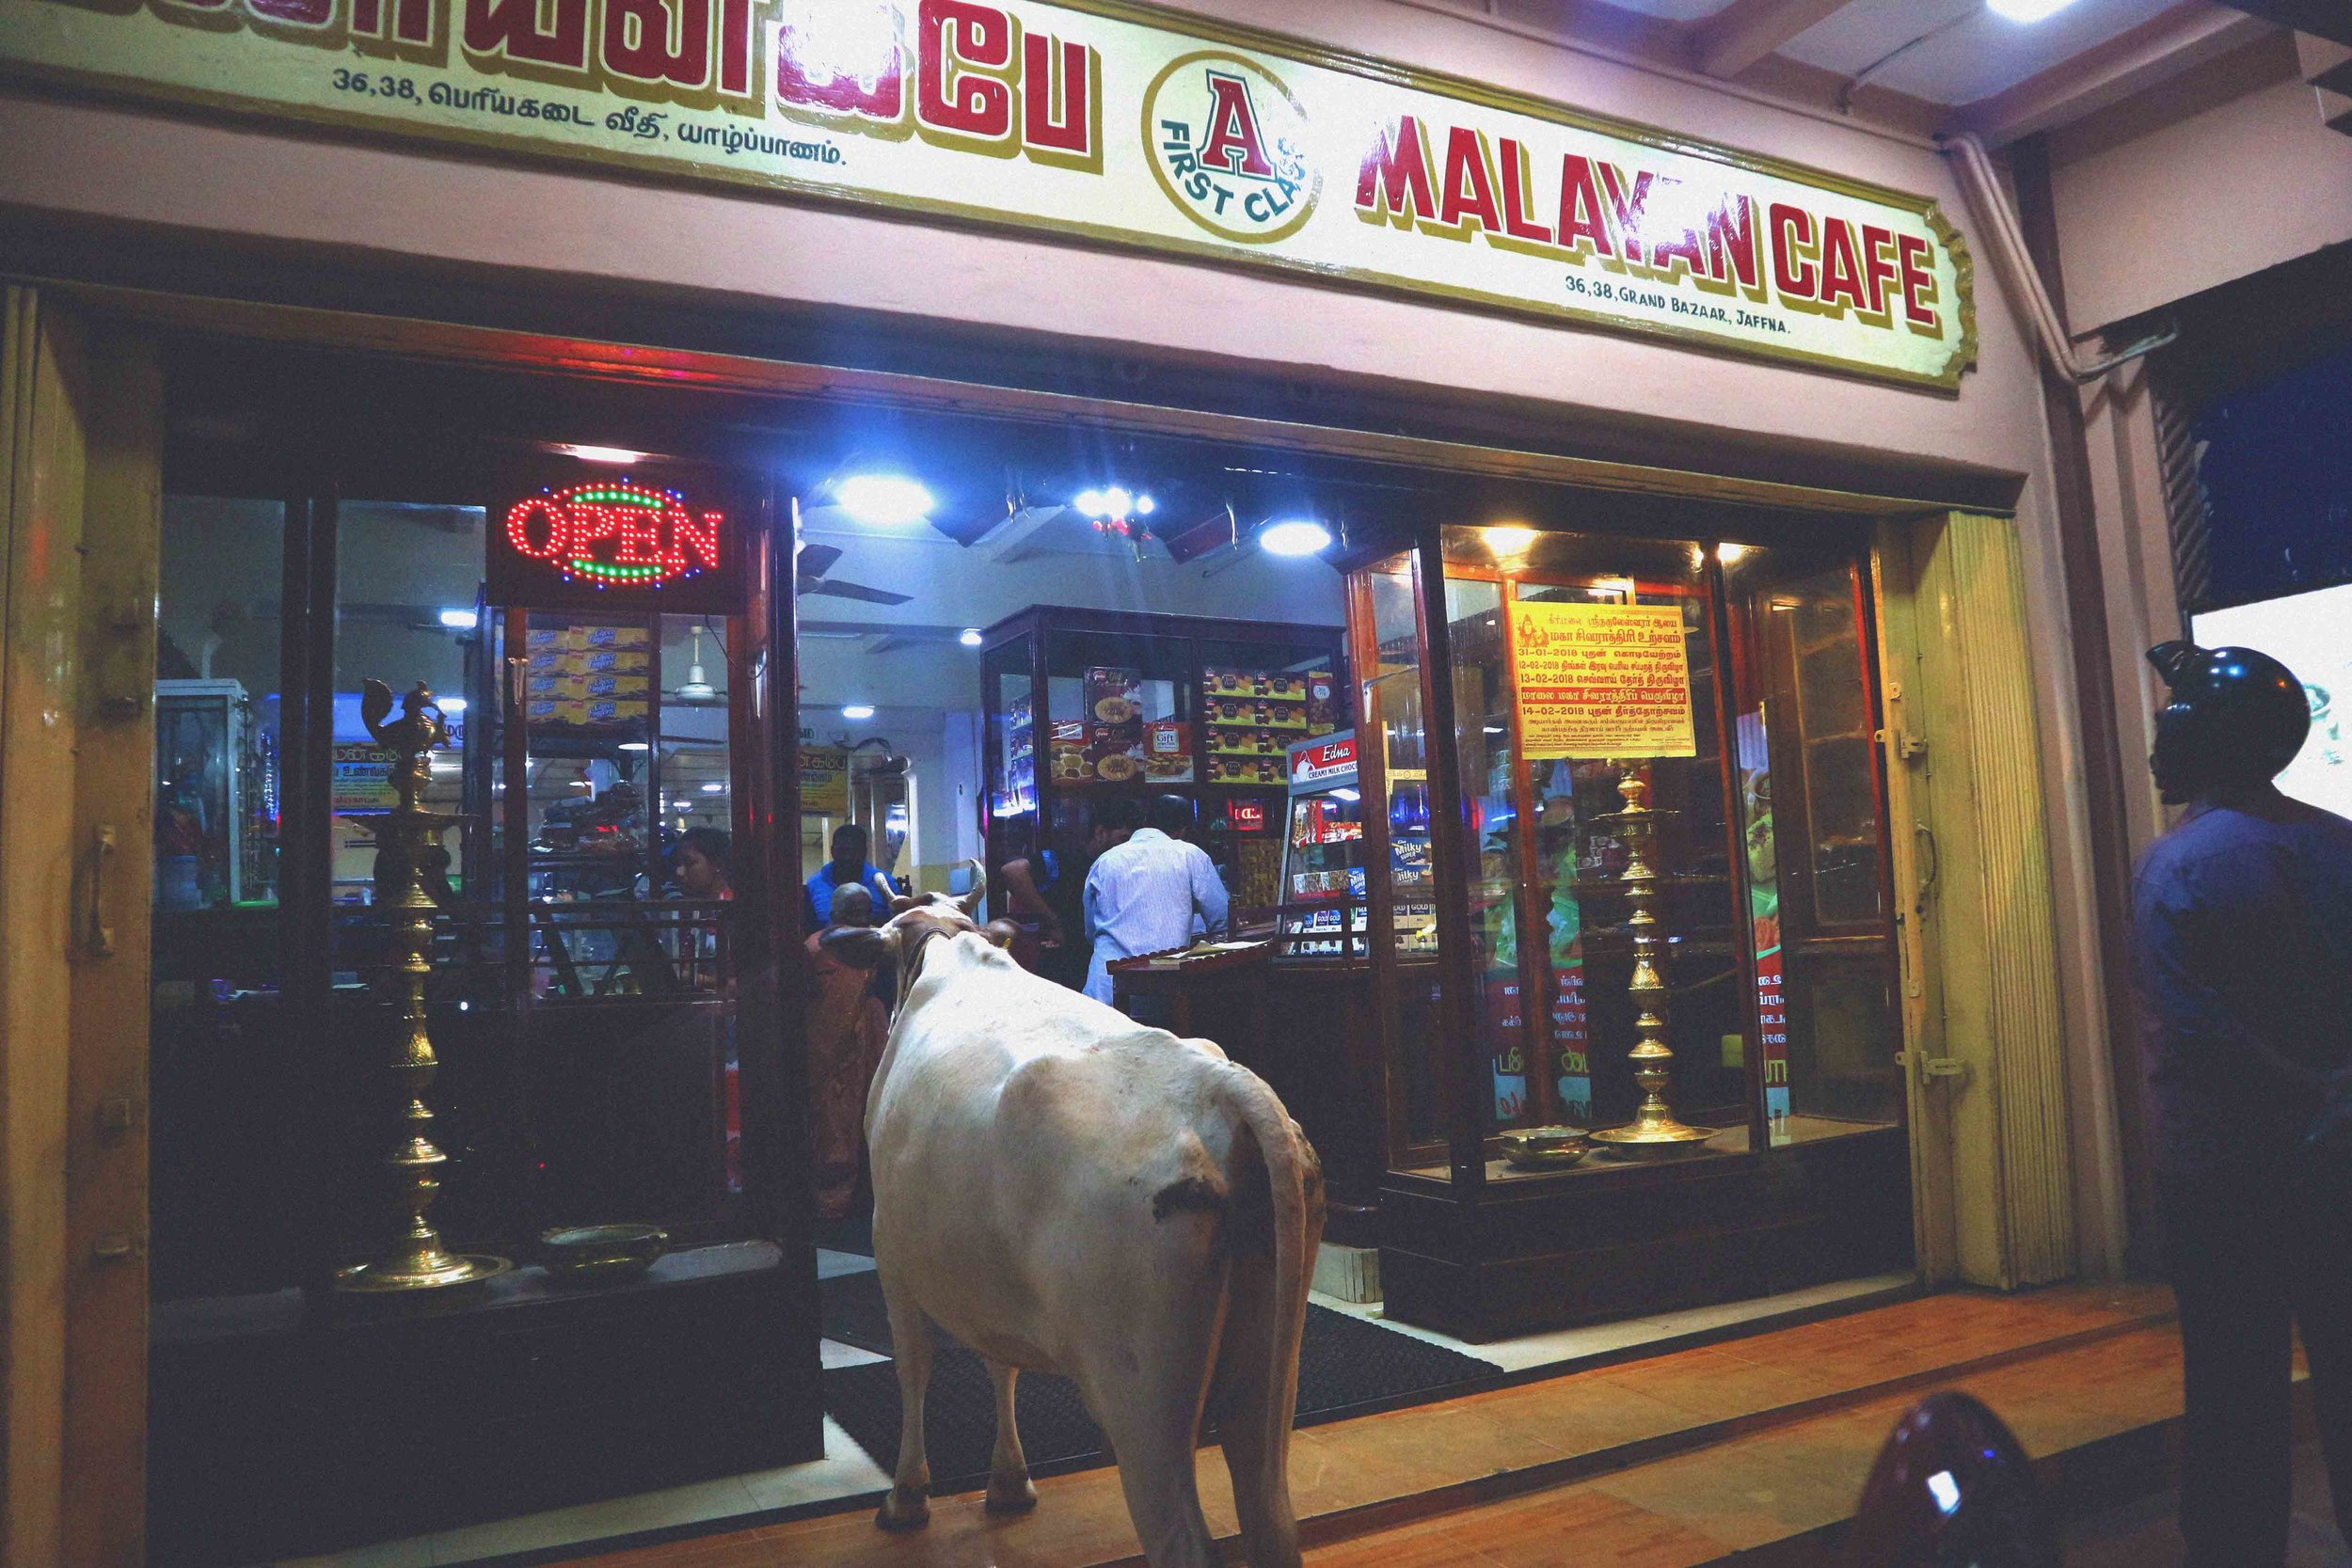 Naughty cow interrupting dinner service at Malayan Cafe